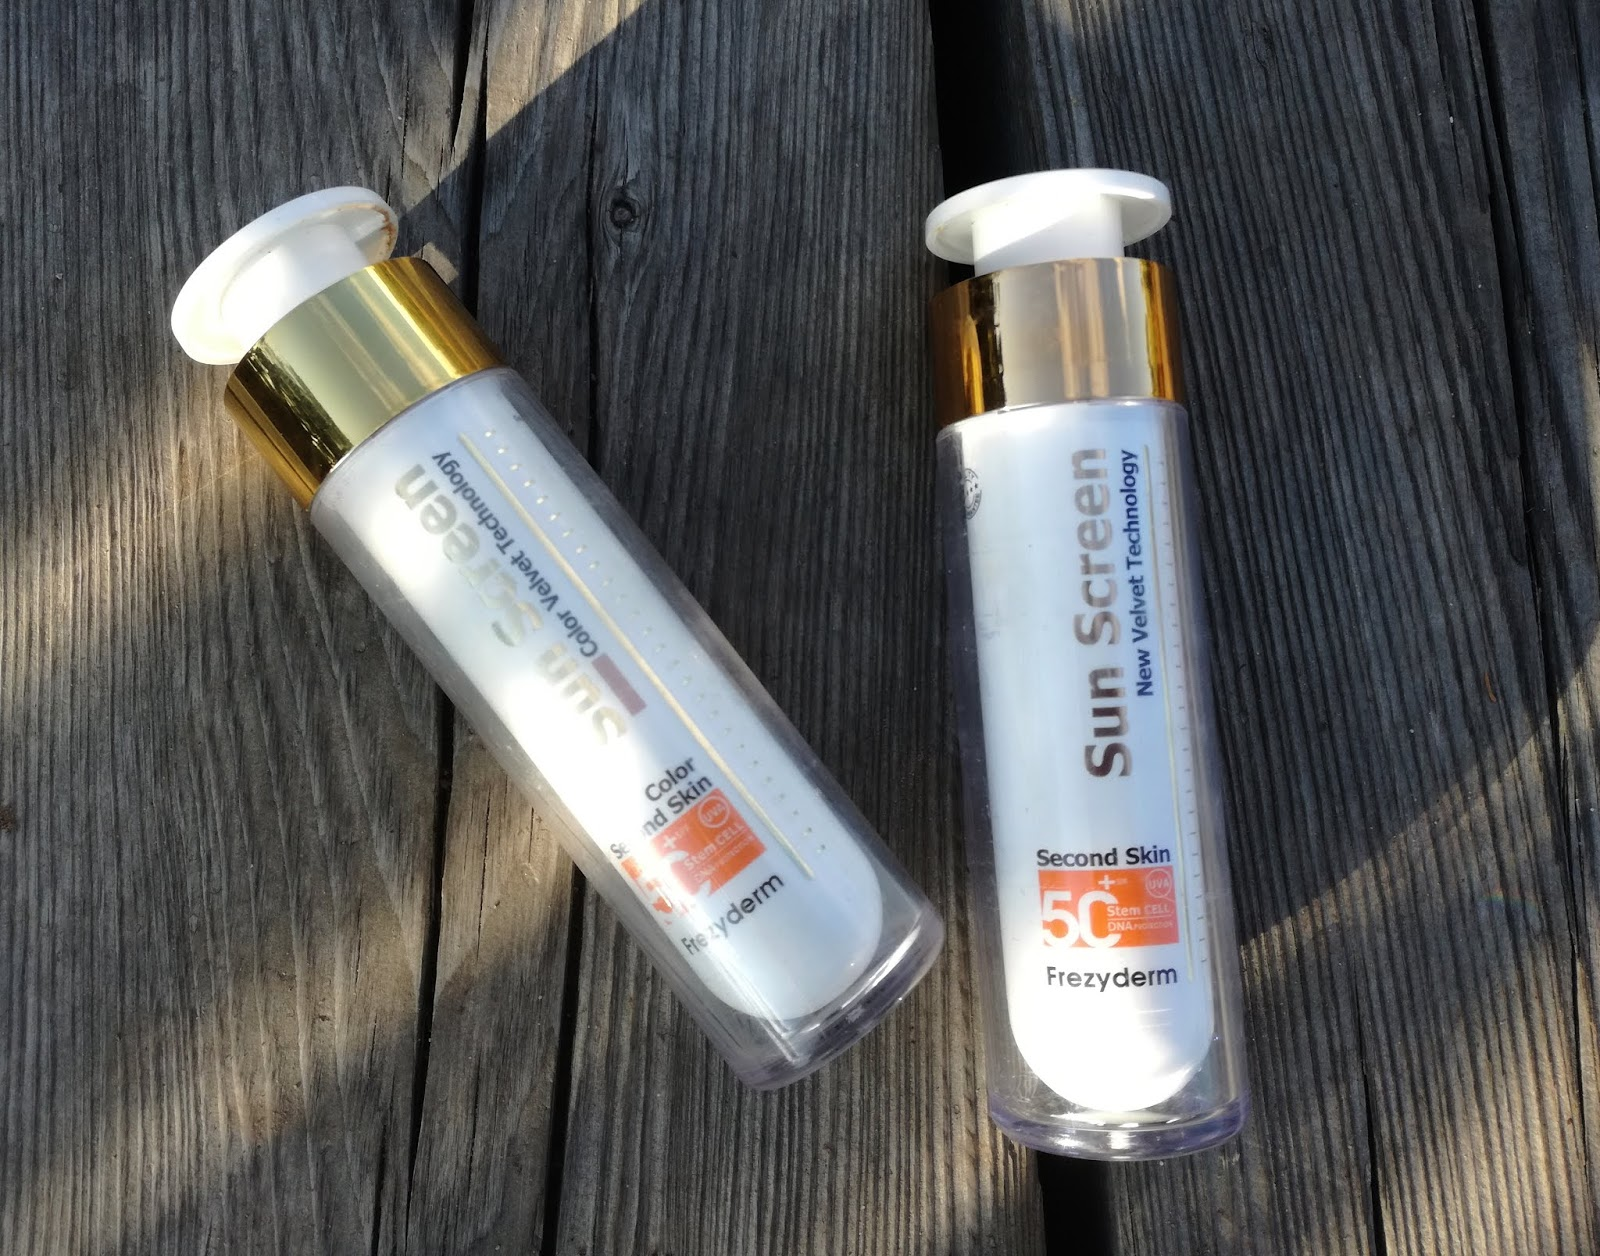 frezyderm-velvet-technology-sunscreen